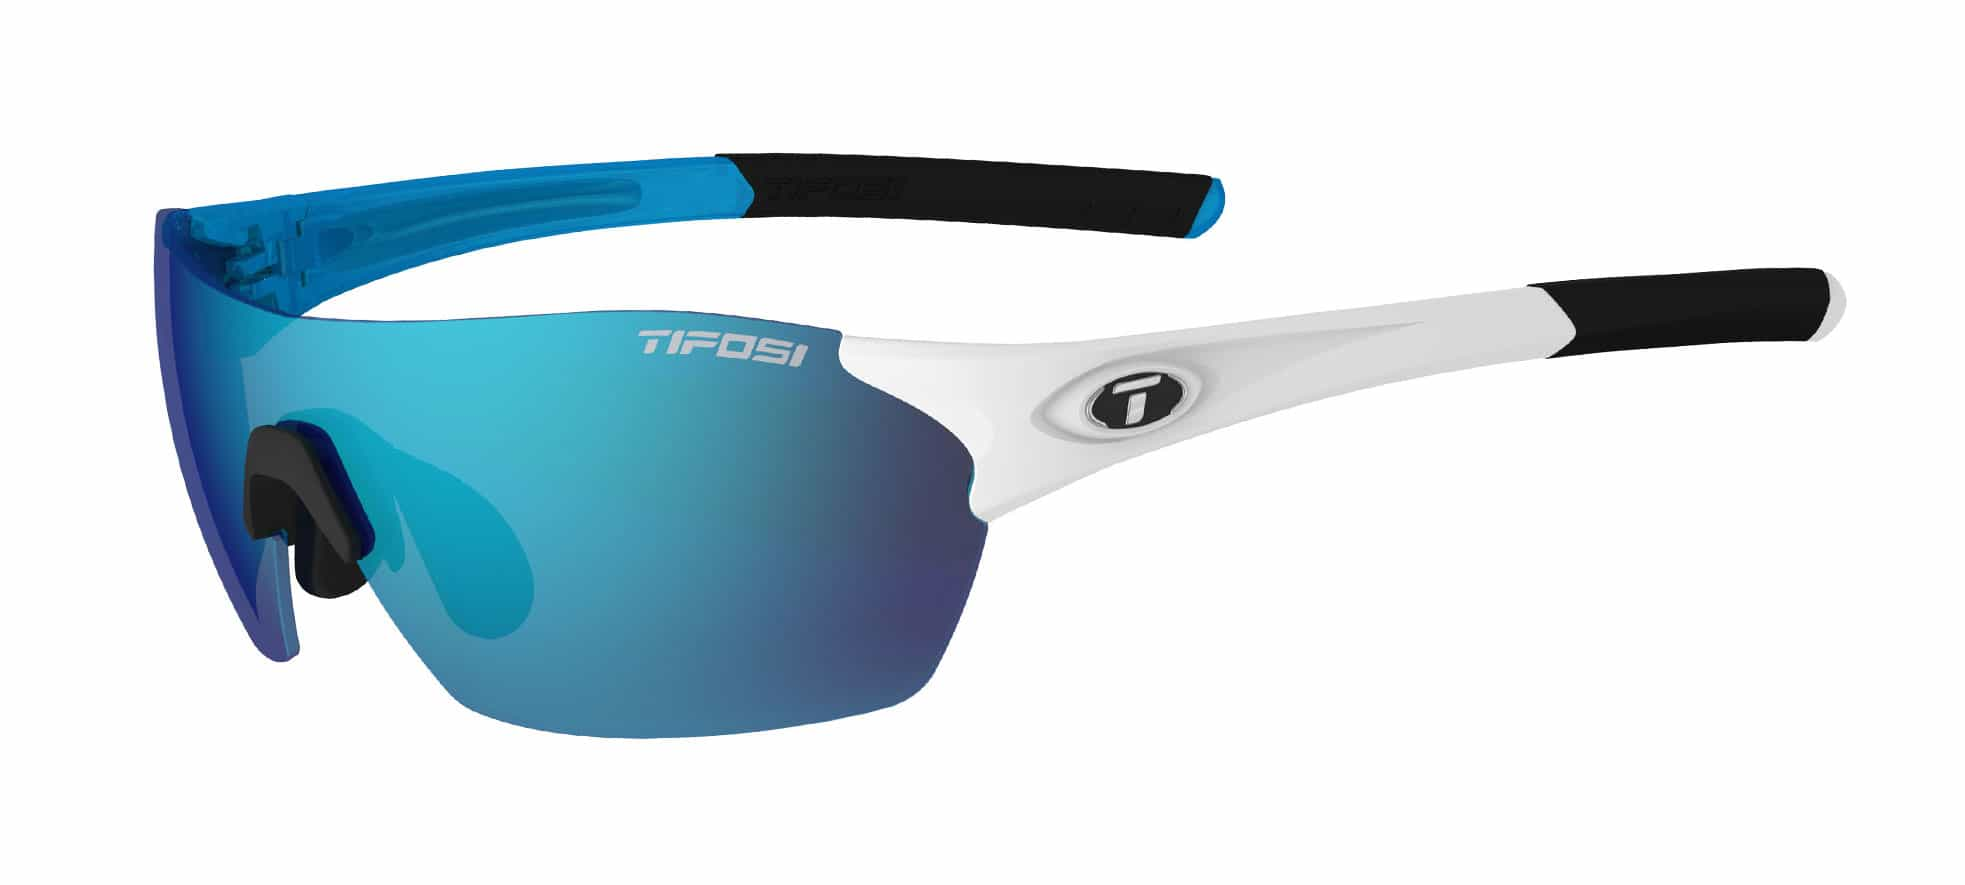 BRIXEN | SKYCLOUD CLARION BLUE / AC RED / CLEAR LENSES